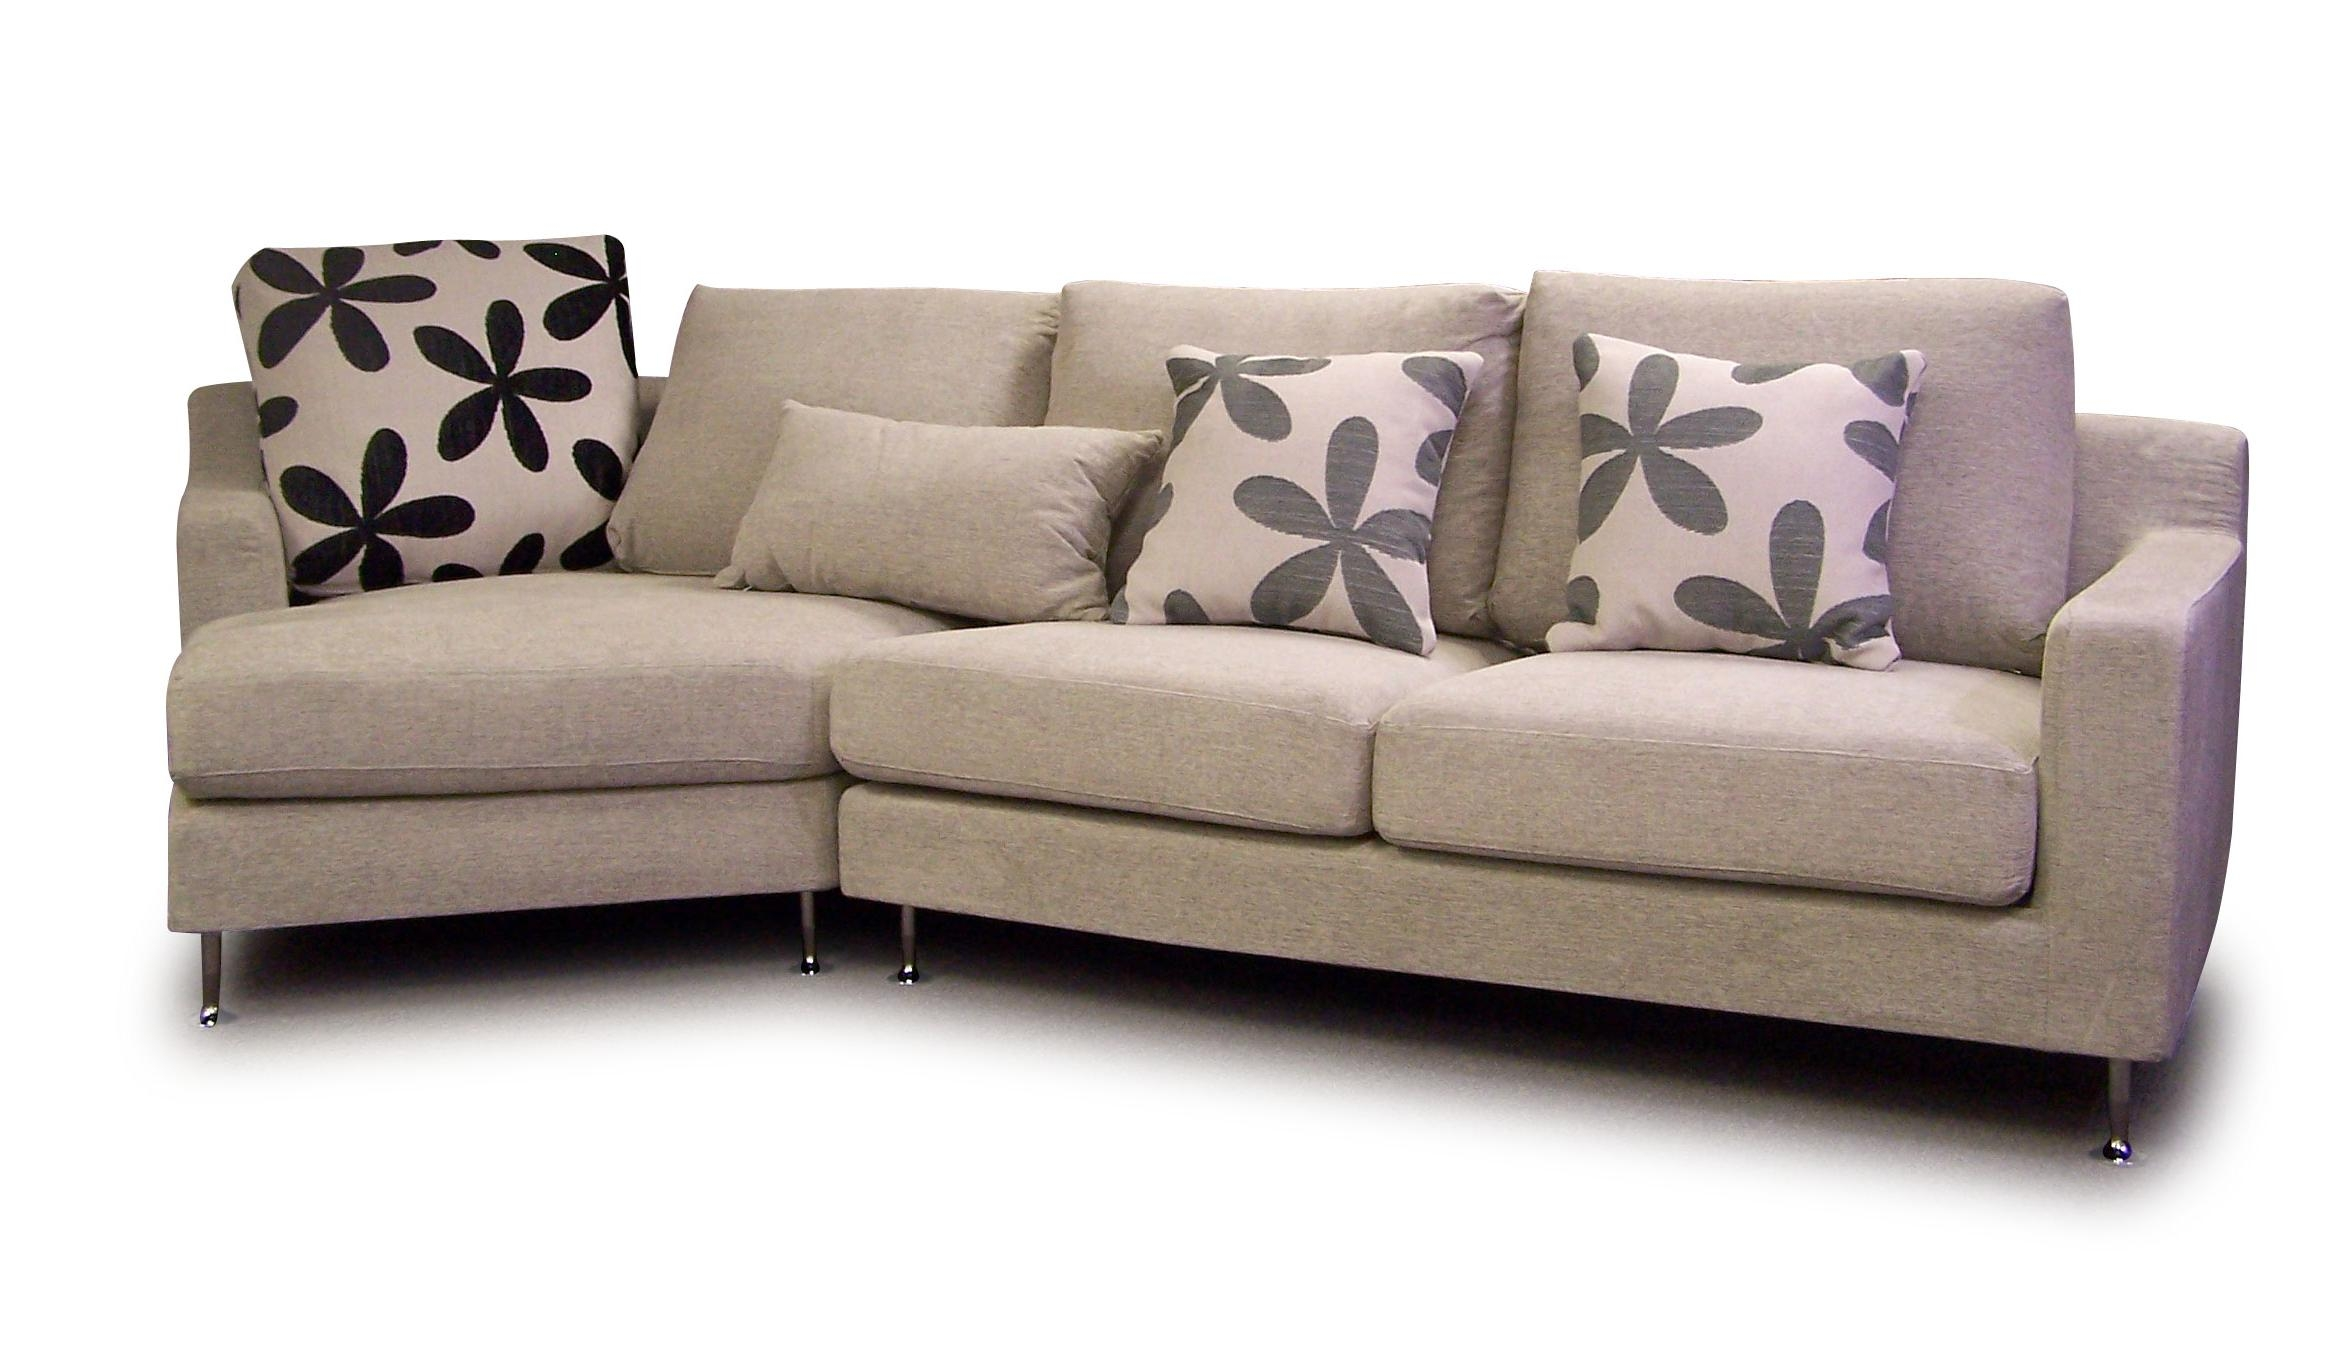 inspirational affordable sofas 48 on modern sofa design with affordable  sofas BDKITZU